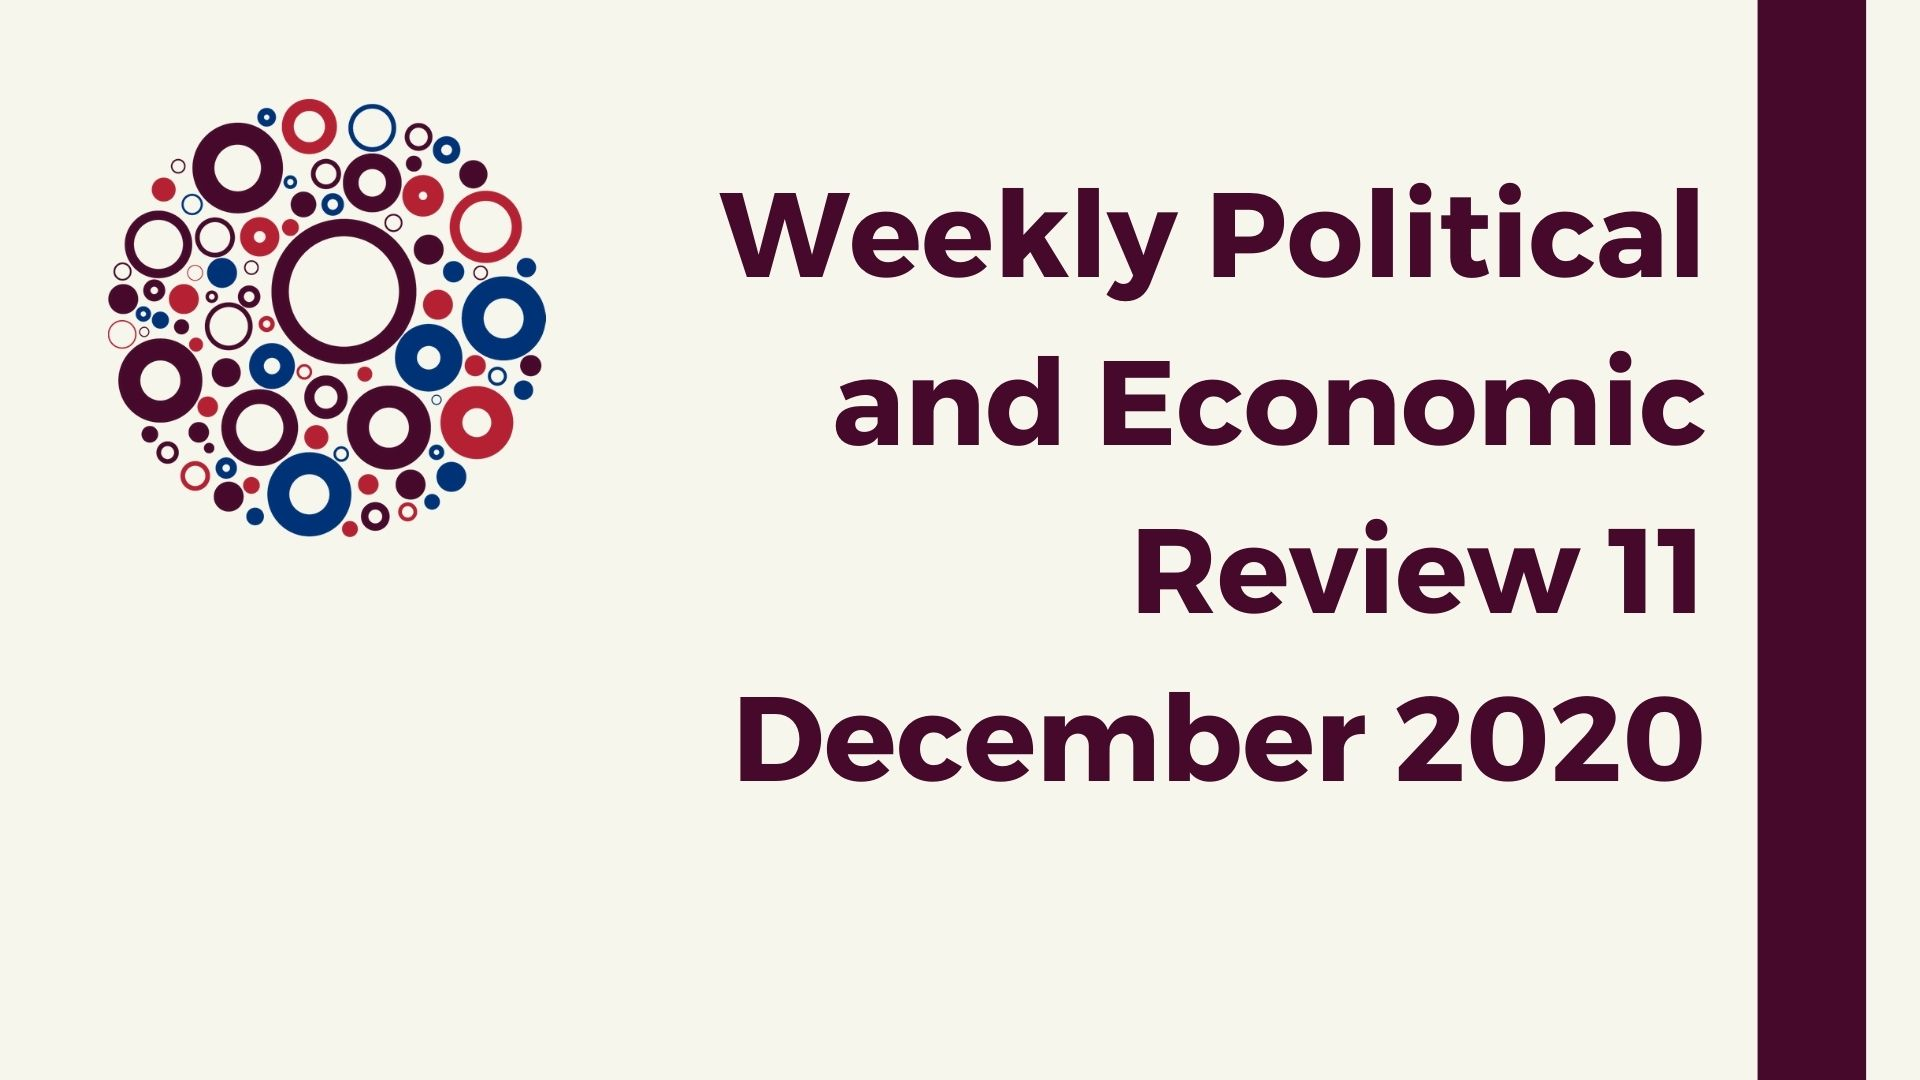 Weekly Political ad Economic Review 11 December 2020